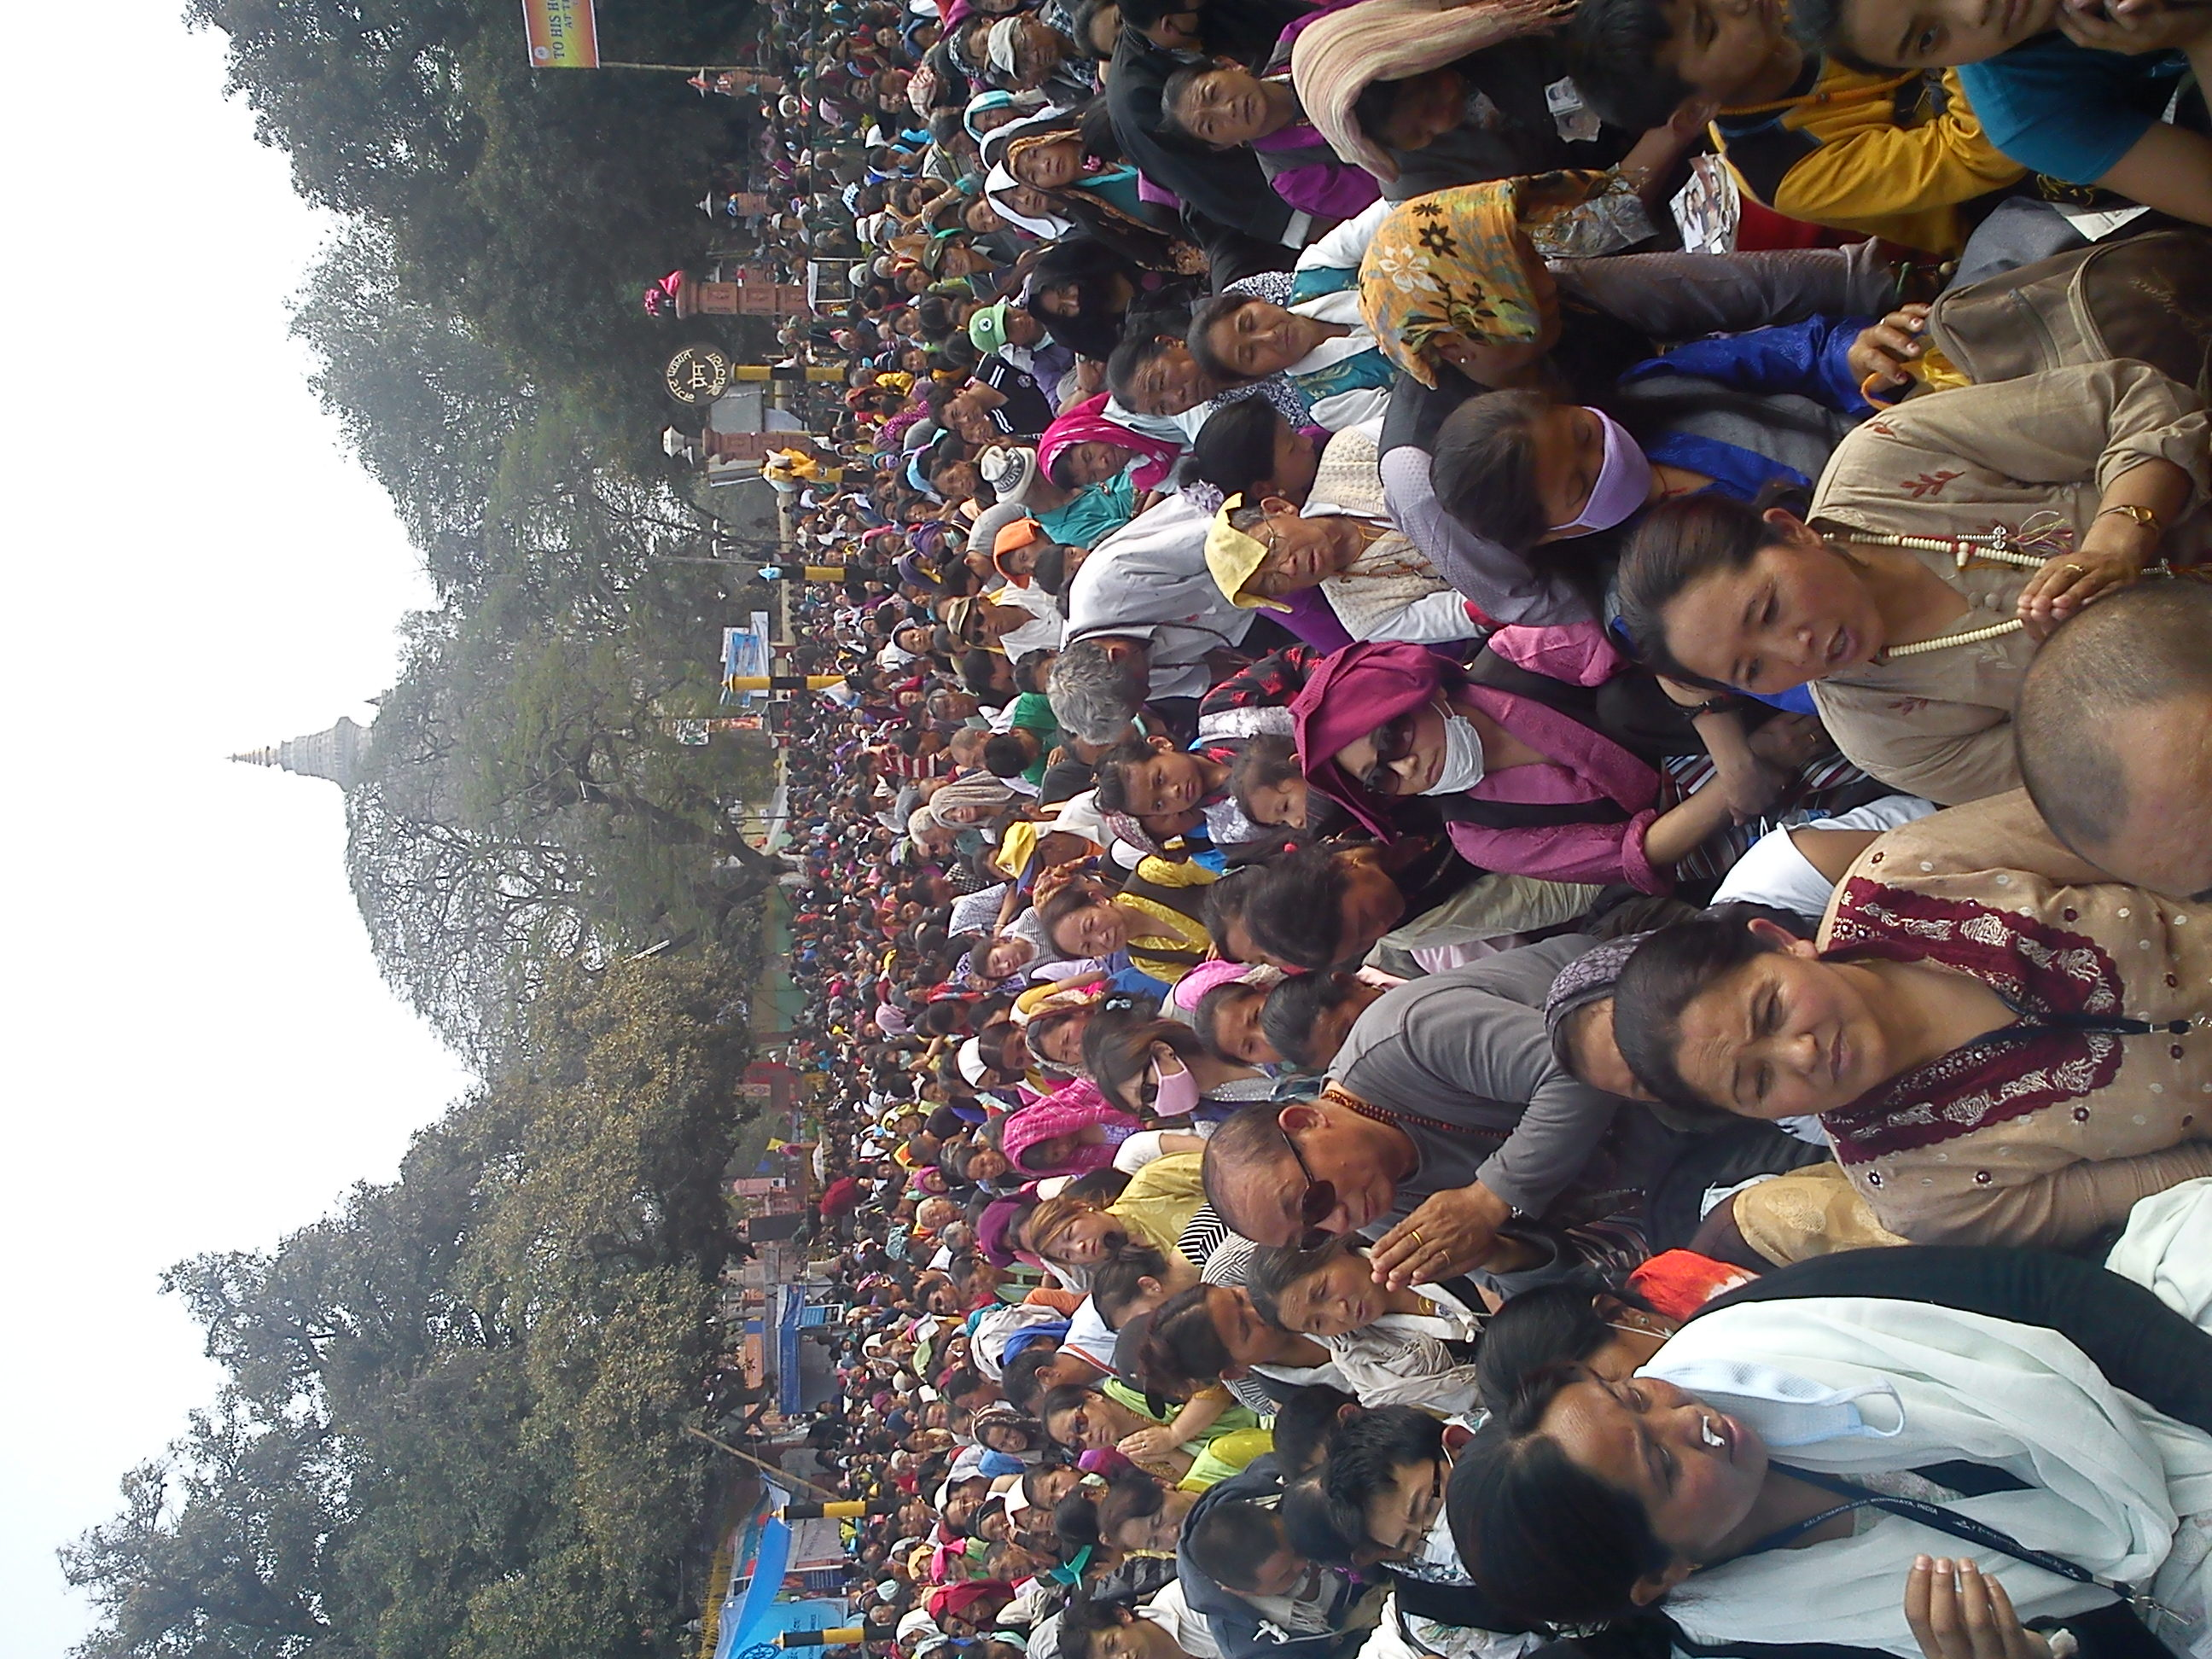 People attending the Kalachakra